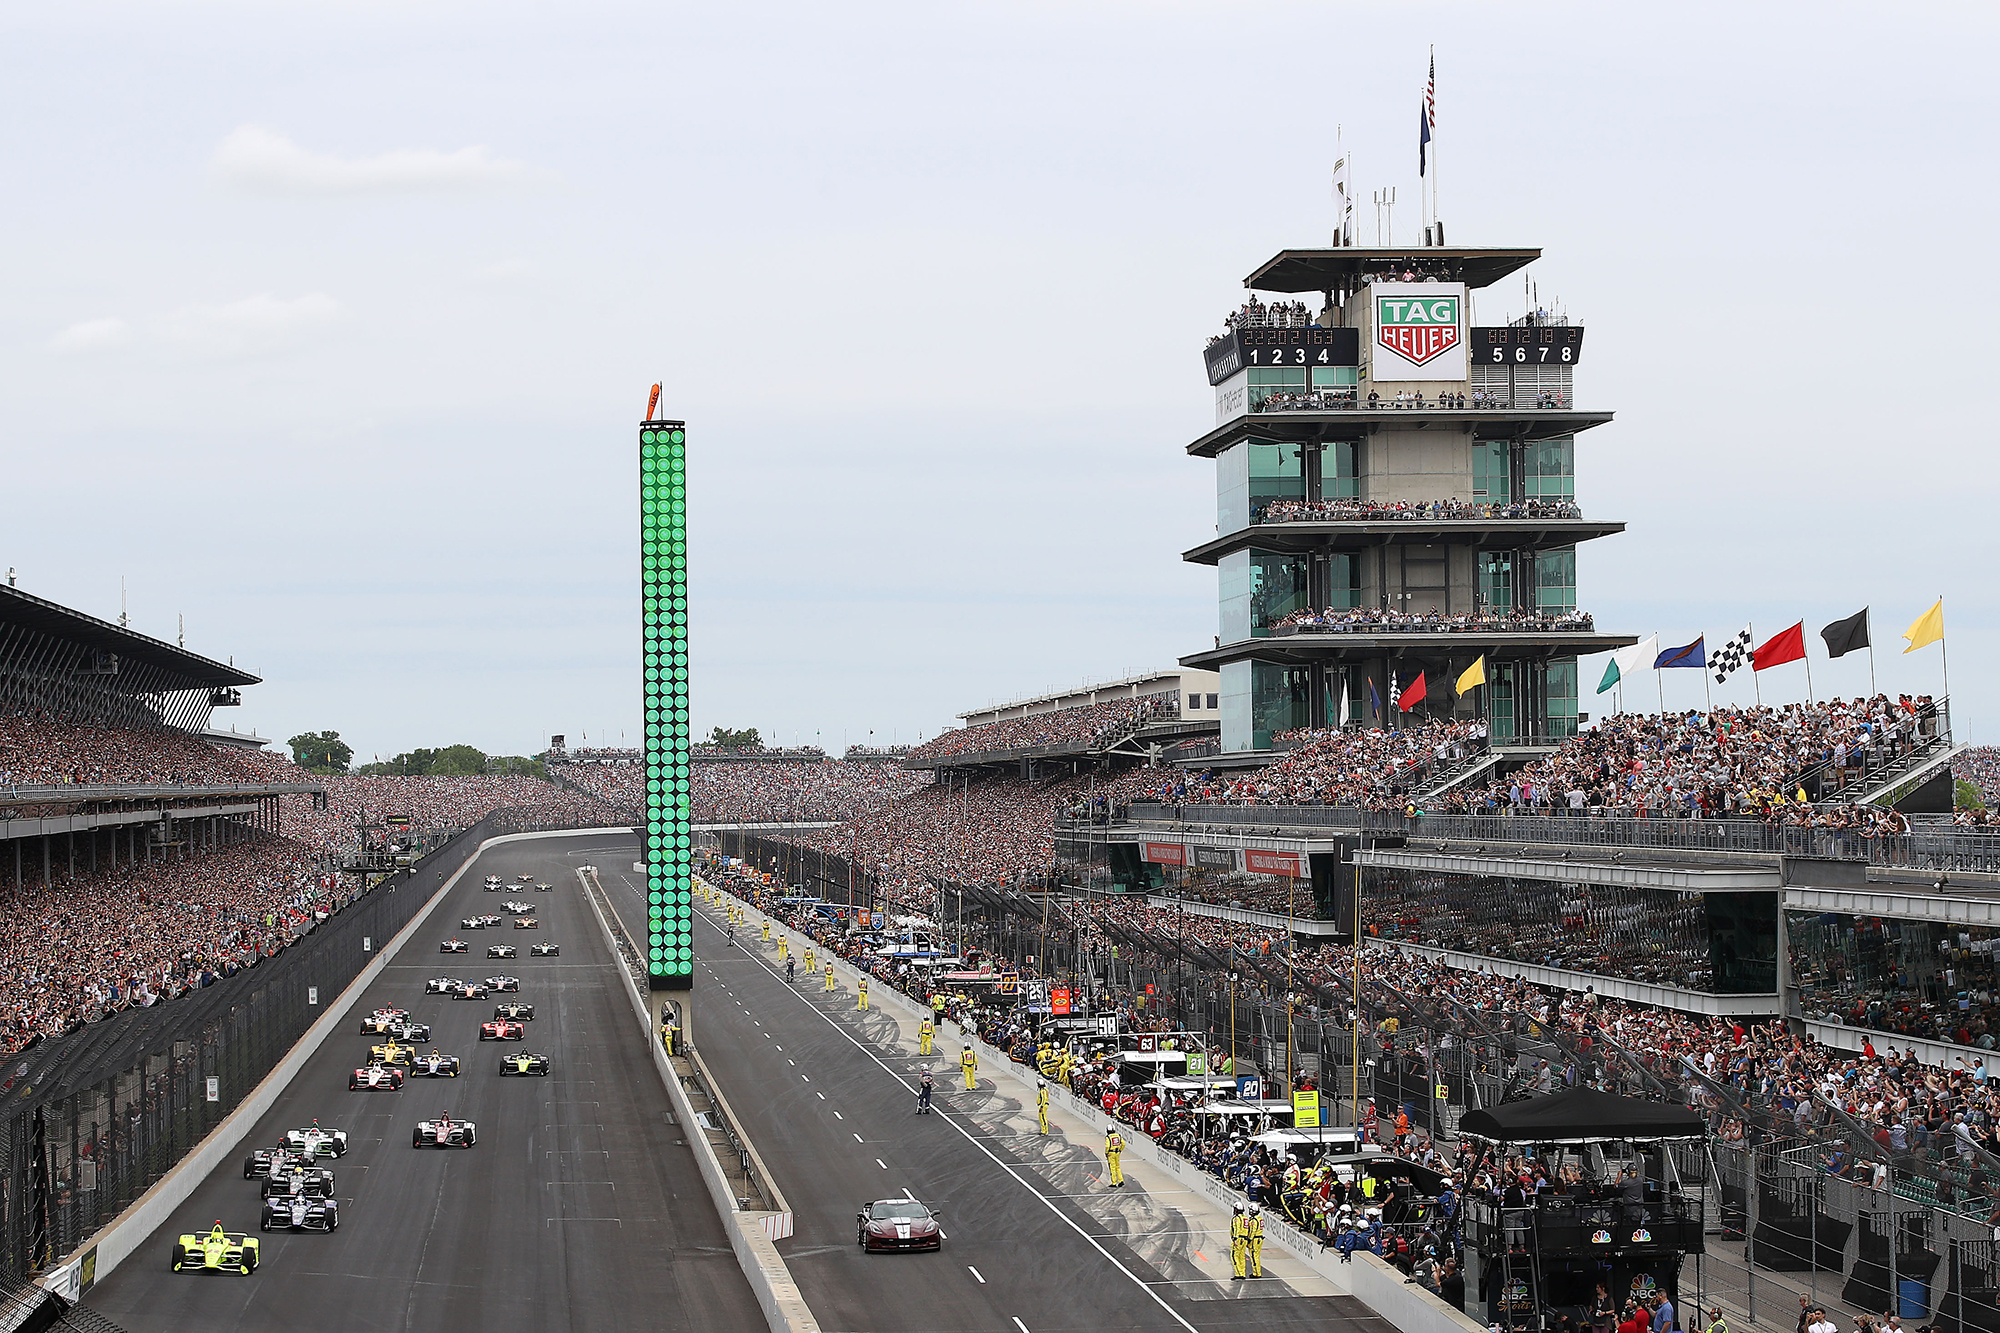 The 103rd running of the Indianapolis 500 at Indianapolis Motor Speedway on May 26, 2019 in Indiana.